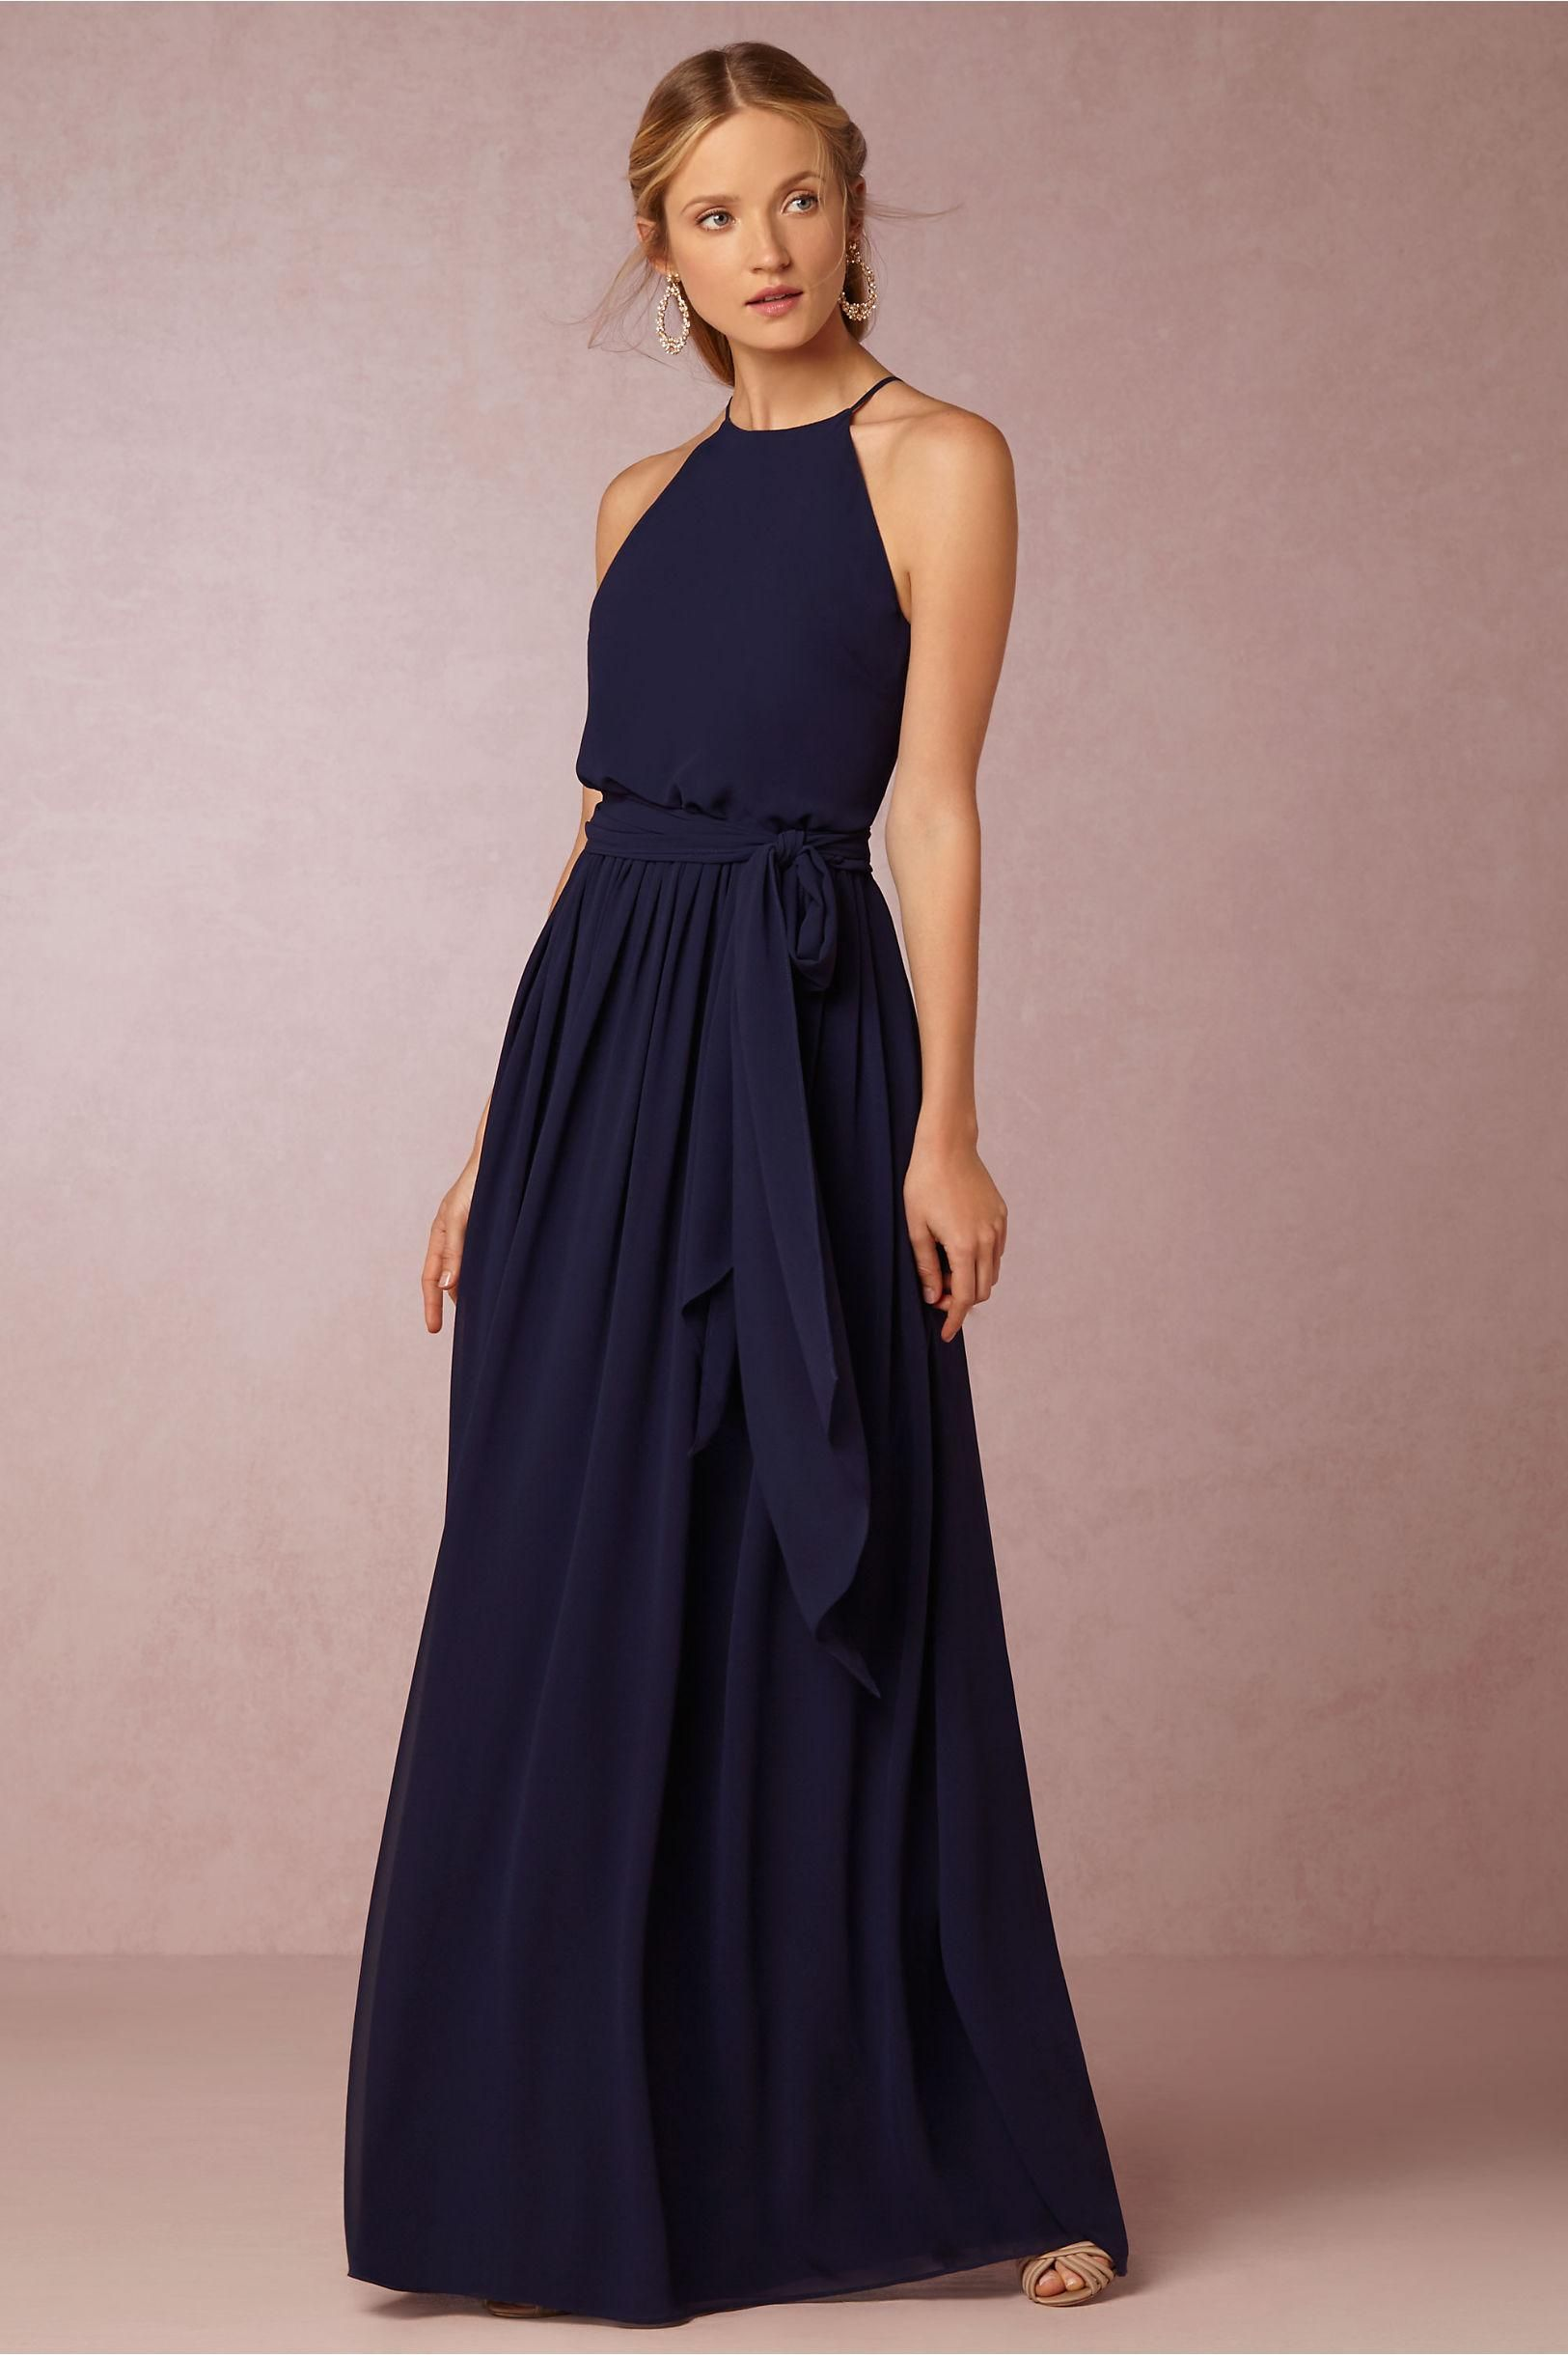 Long navy blue bridesmaid dresses bhldn 2016 chiffon summer beach long navy blue bridesmaid dresses bhldn 2016 chiffon summer beach wedding party dresses long floor length cheap bridesmaid formal dresses ombrellifo Image collections